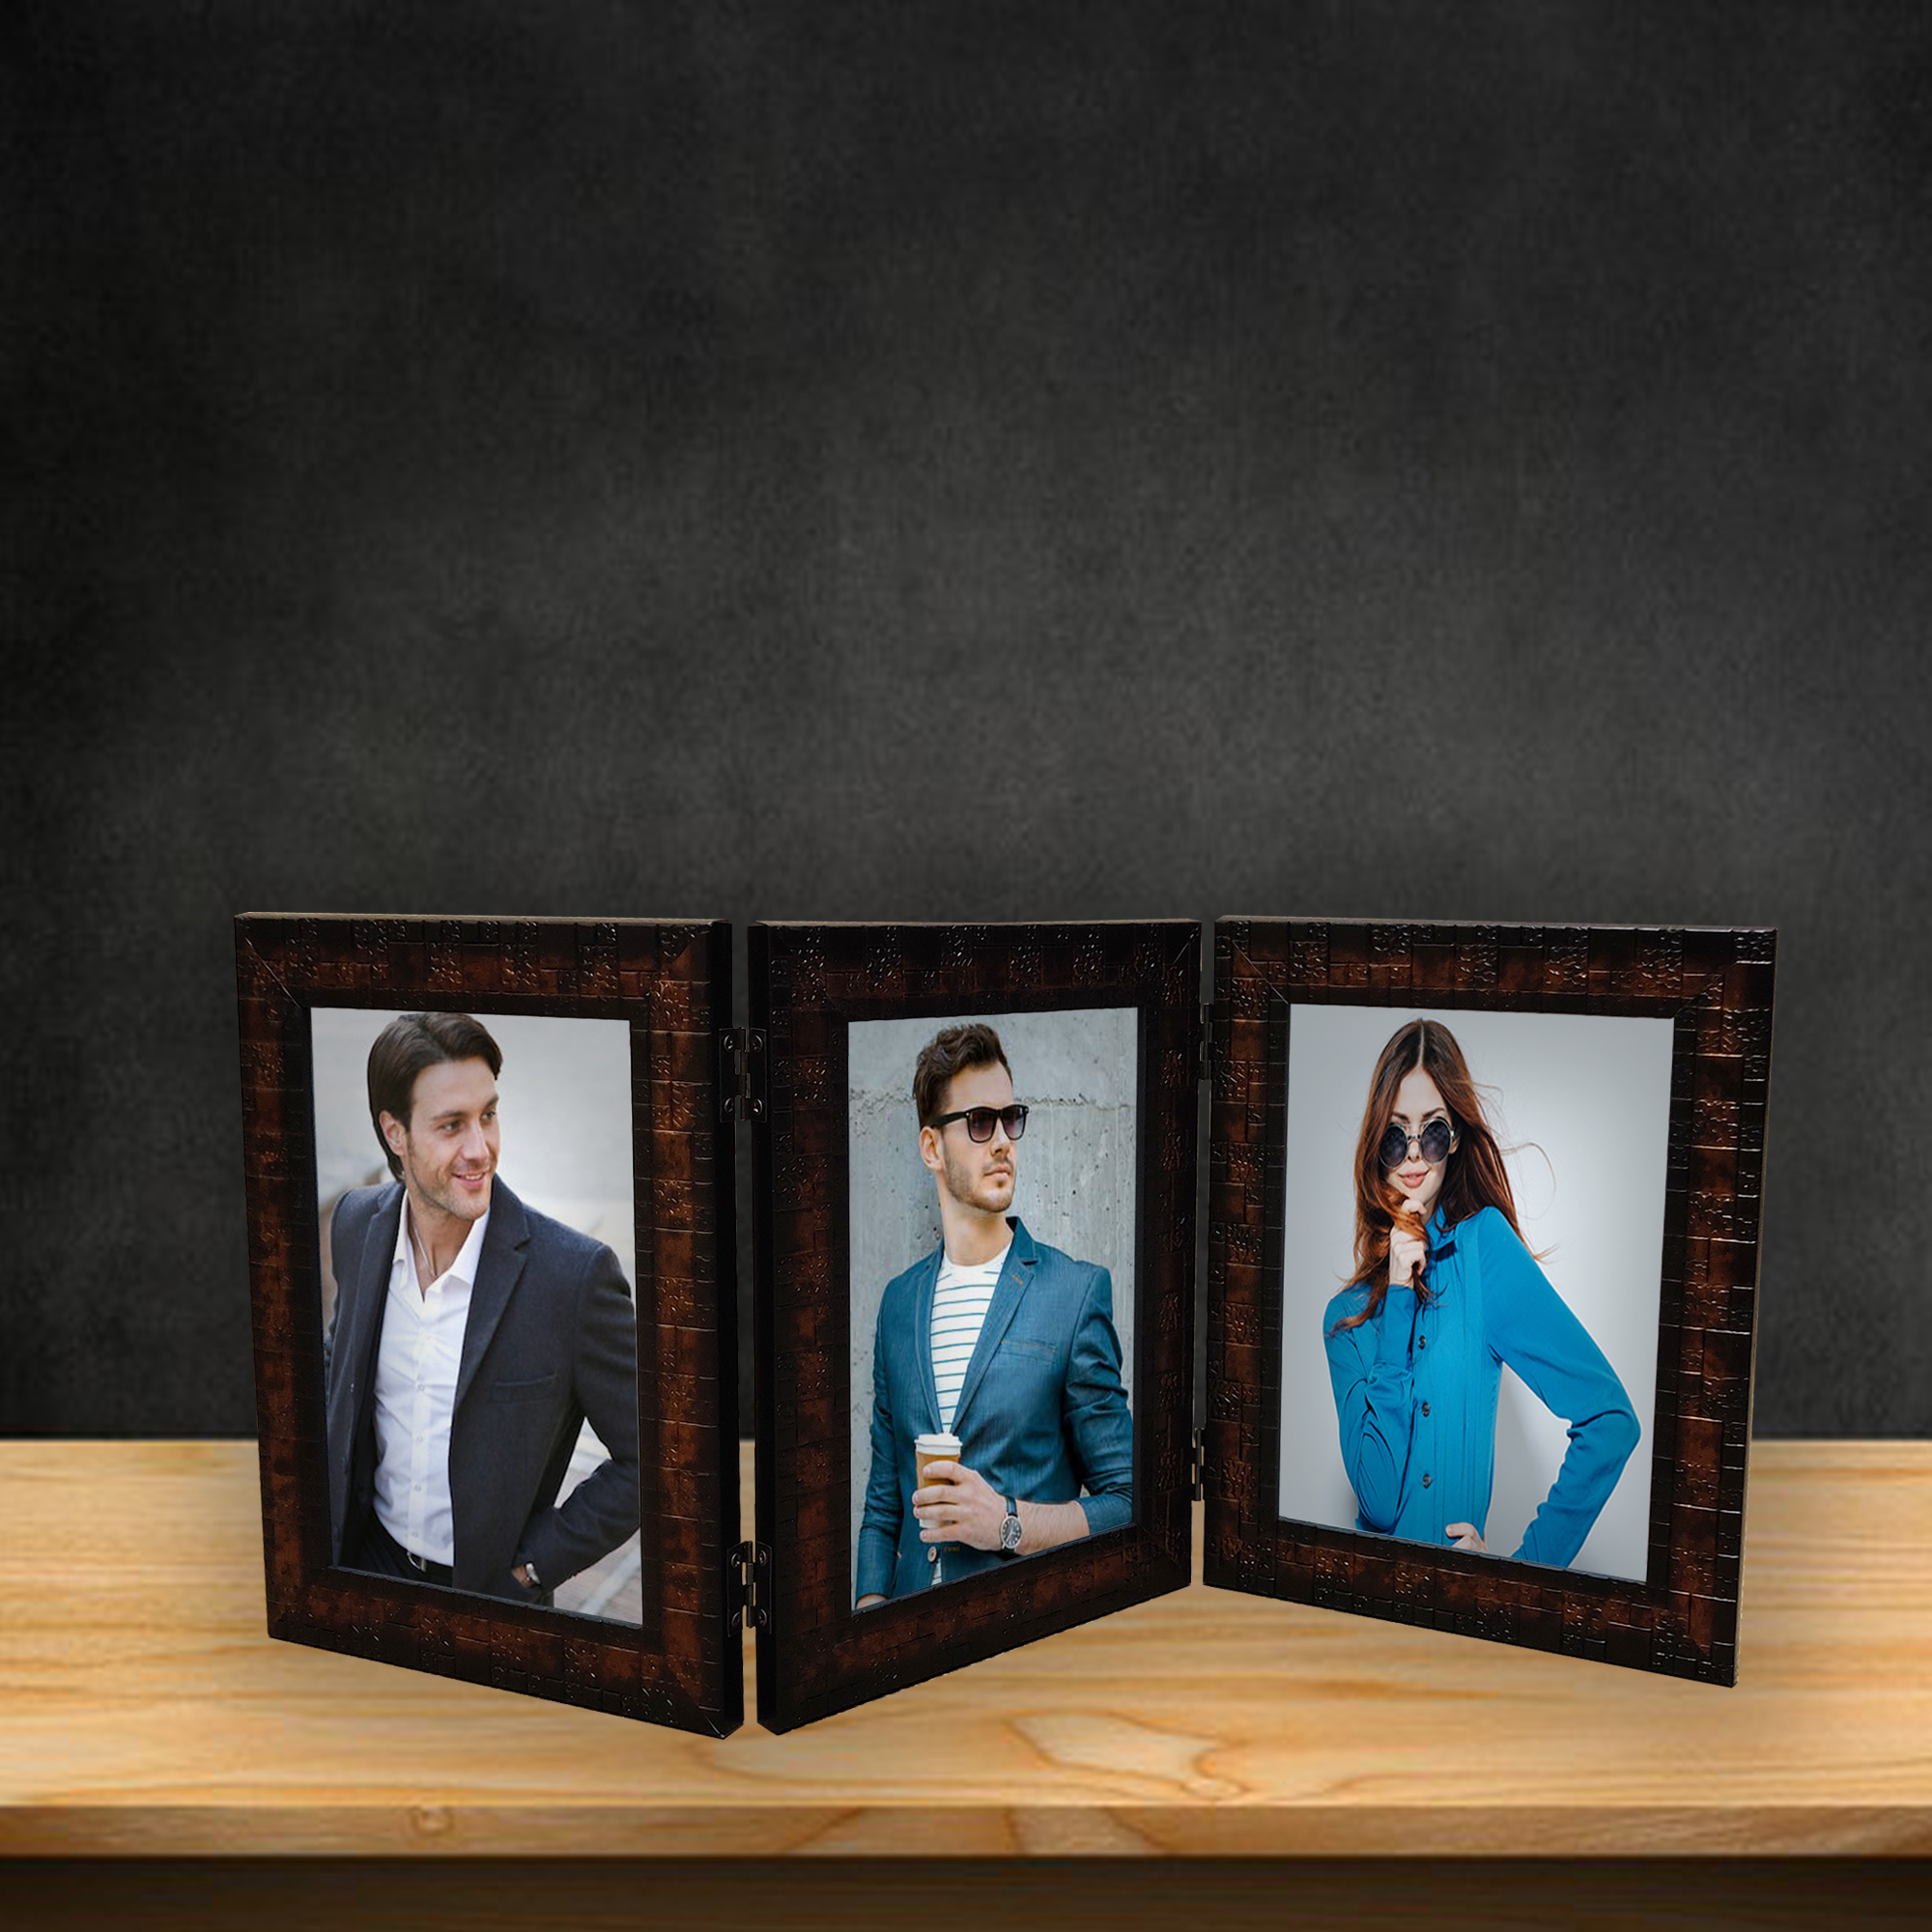 Triple Fold Photo Frame 5/7 Inch BN19 (Without photo)